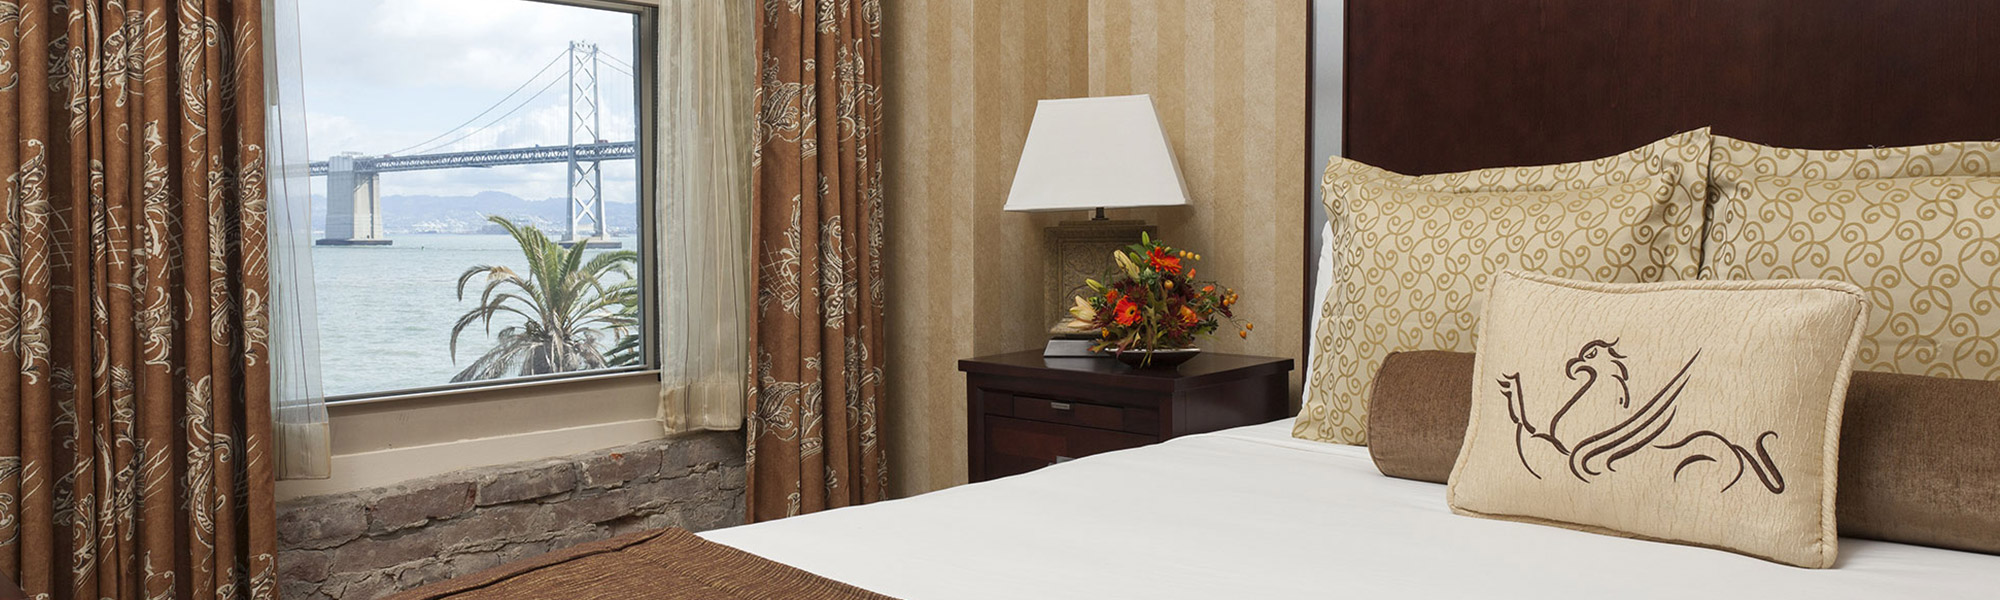 Packages availiable at Hotel Griffon Hotel, San Francisco